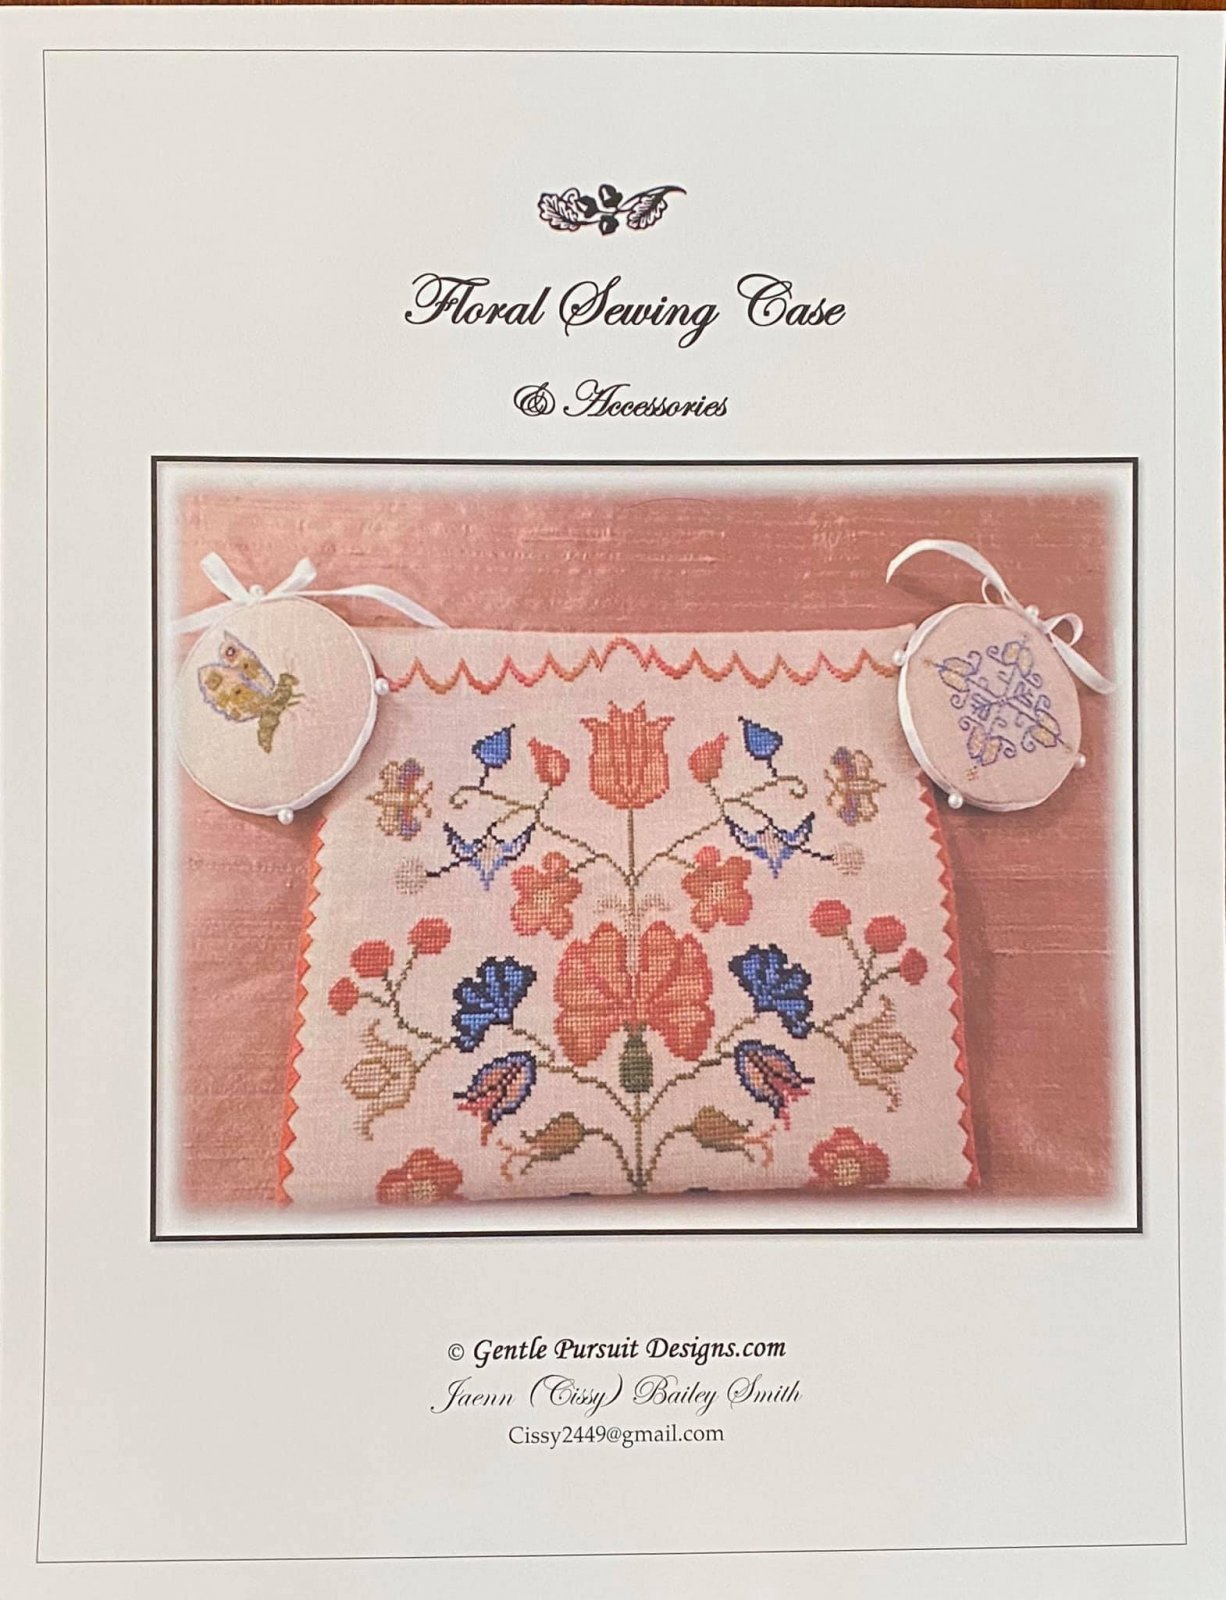 Gentle Pursuit Designs Floral Sewing Book